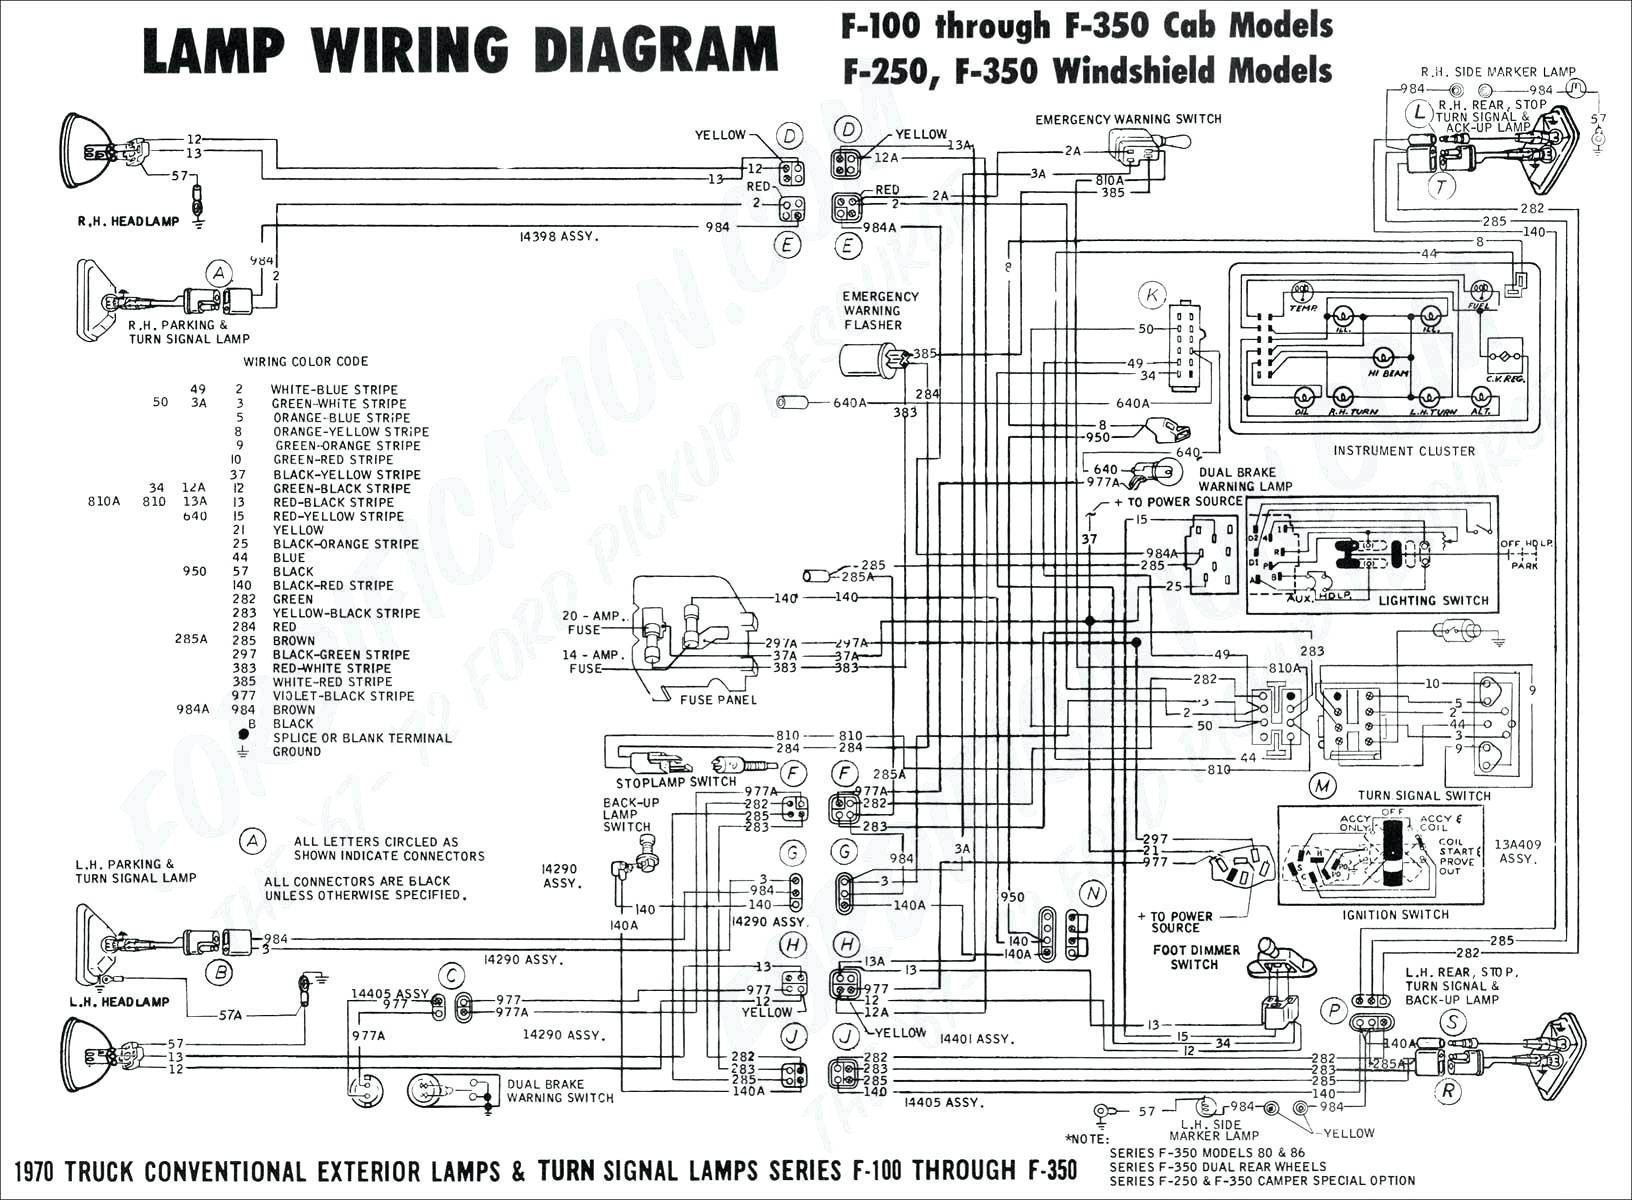 1952 International Truck Wiring Diagram Schematic